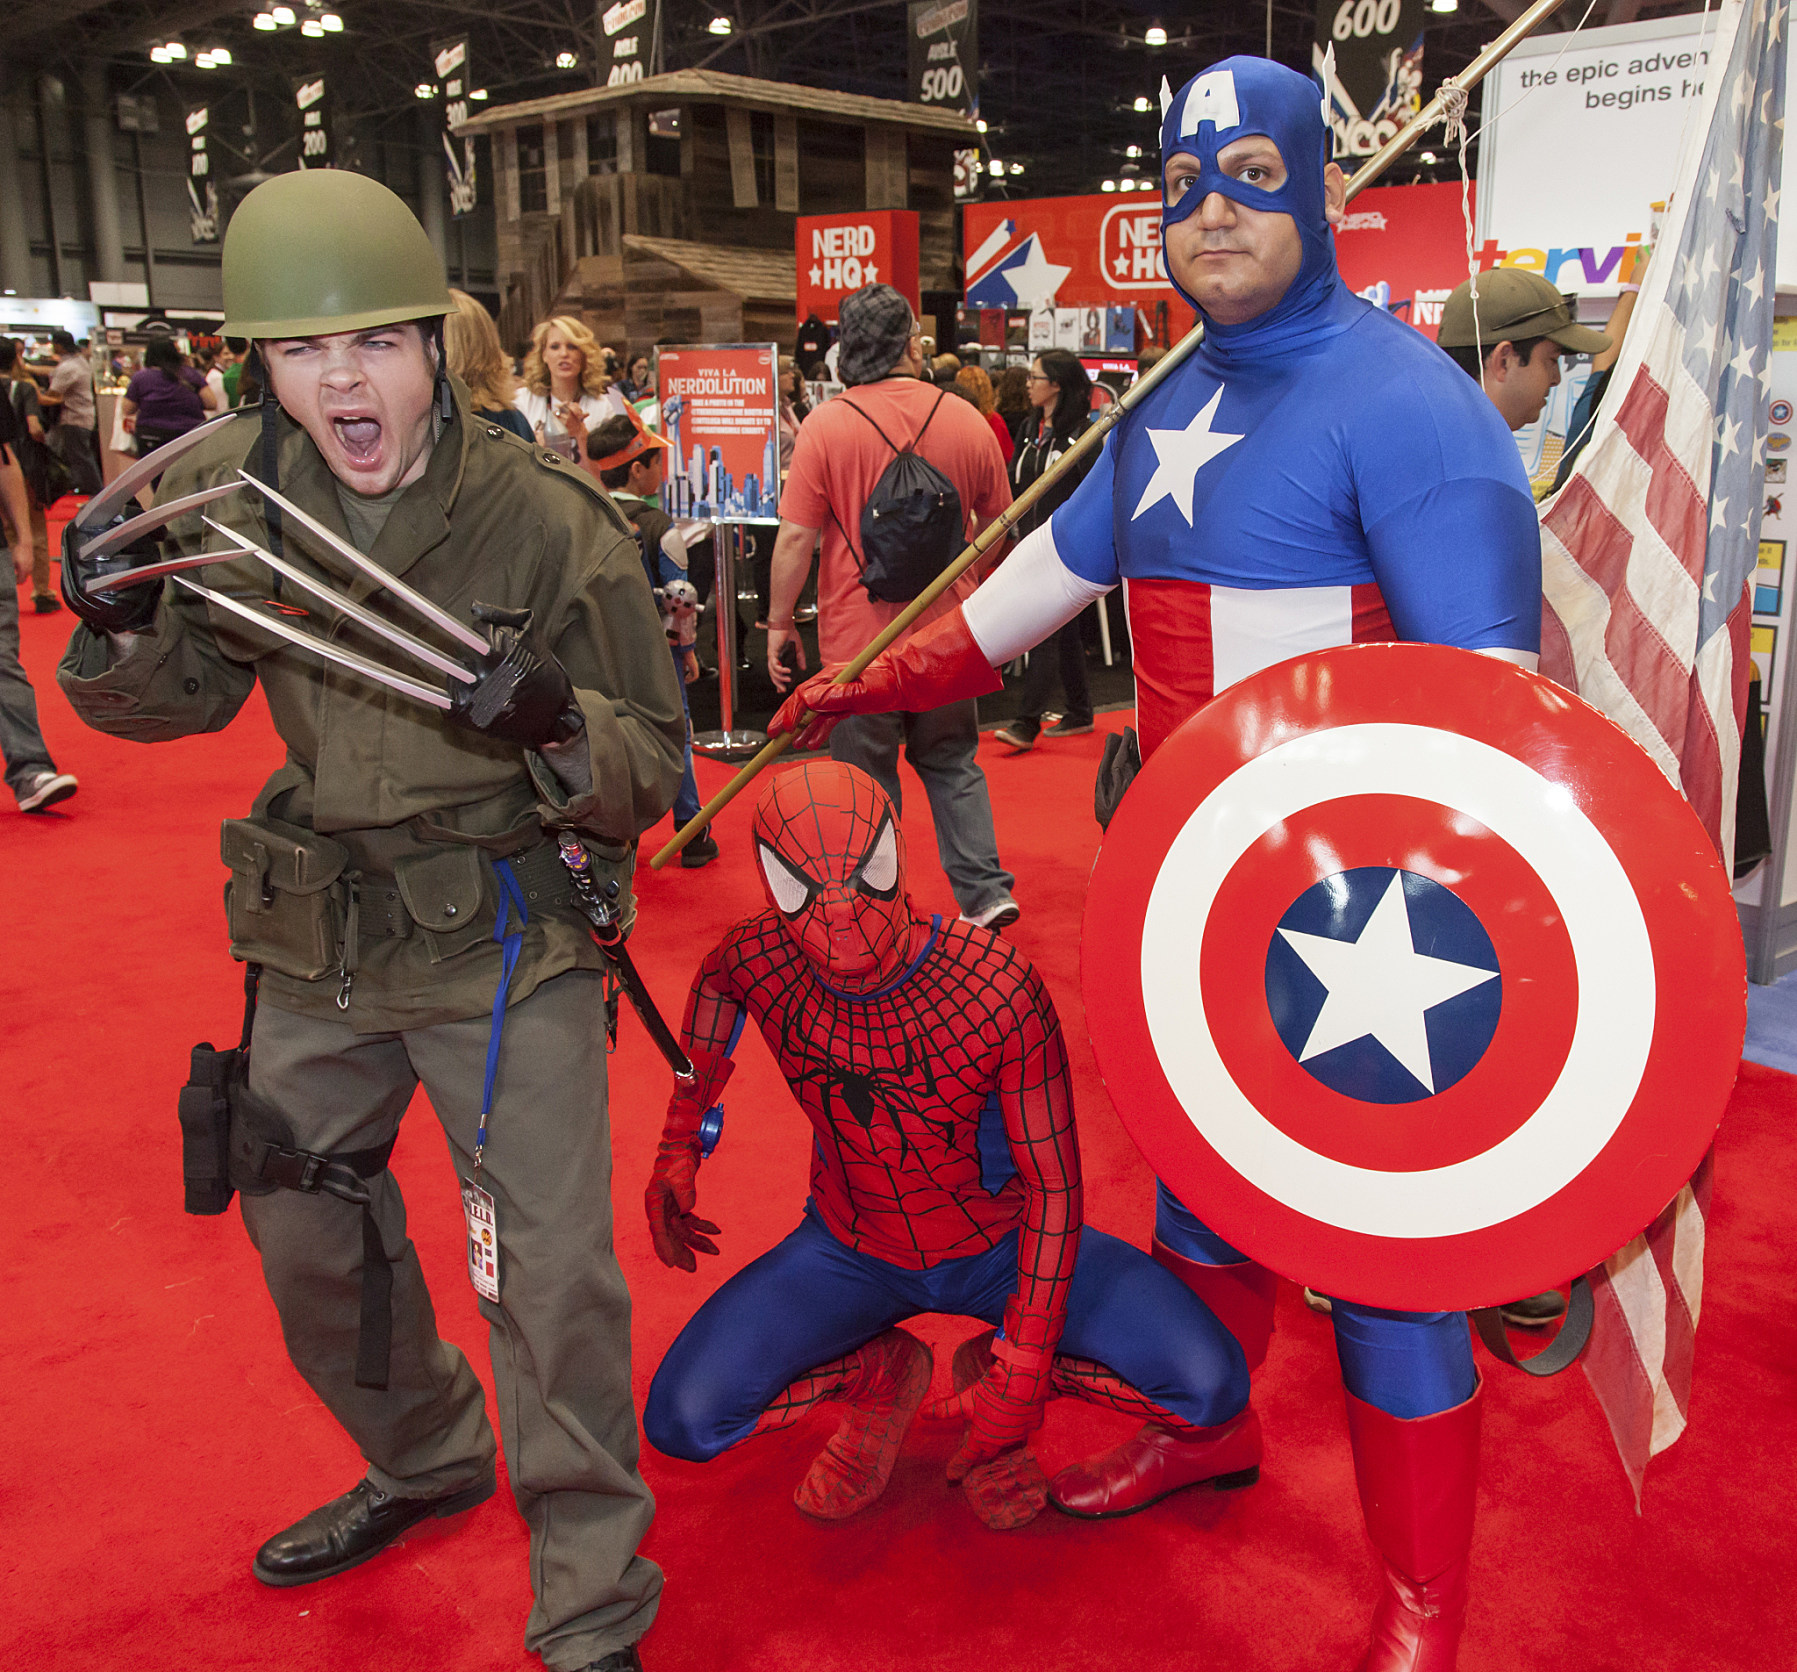 Our Very Own Local Comic-Con